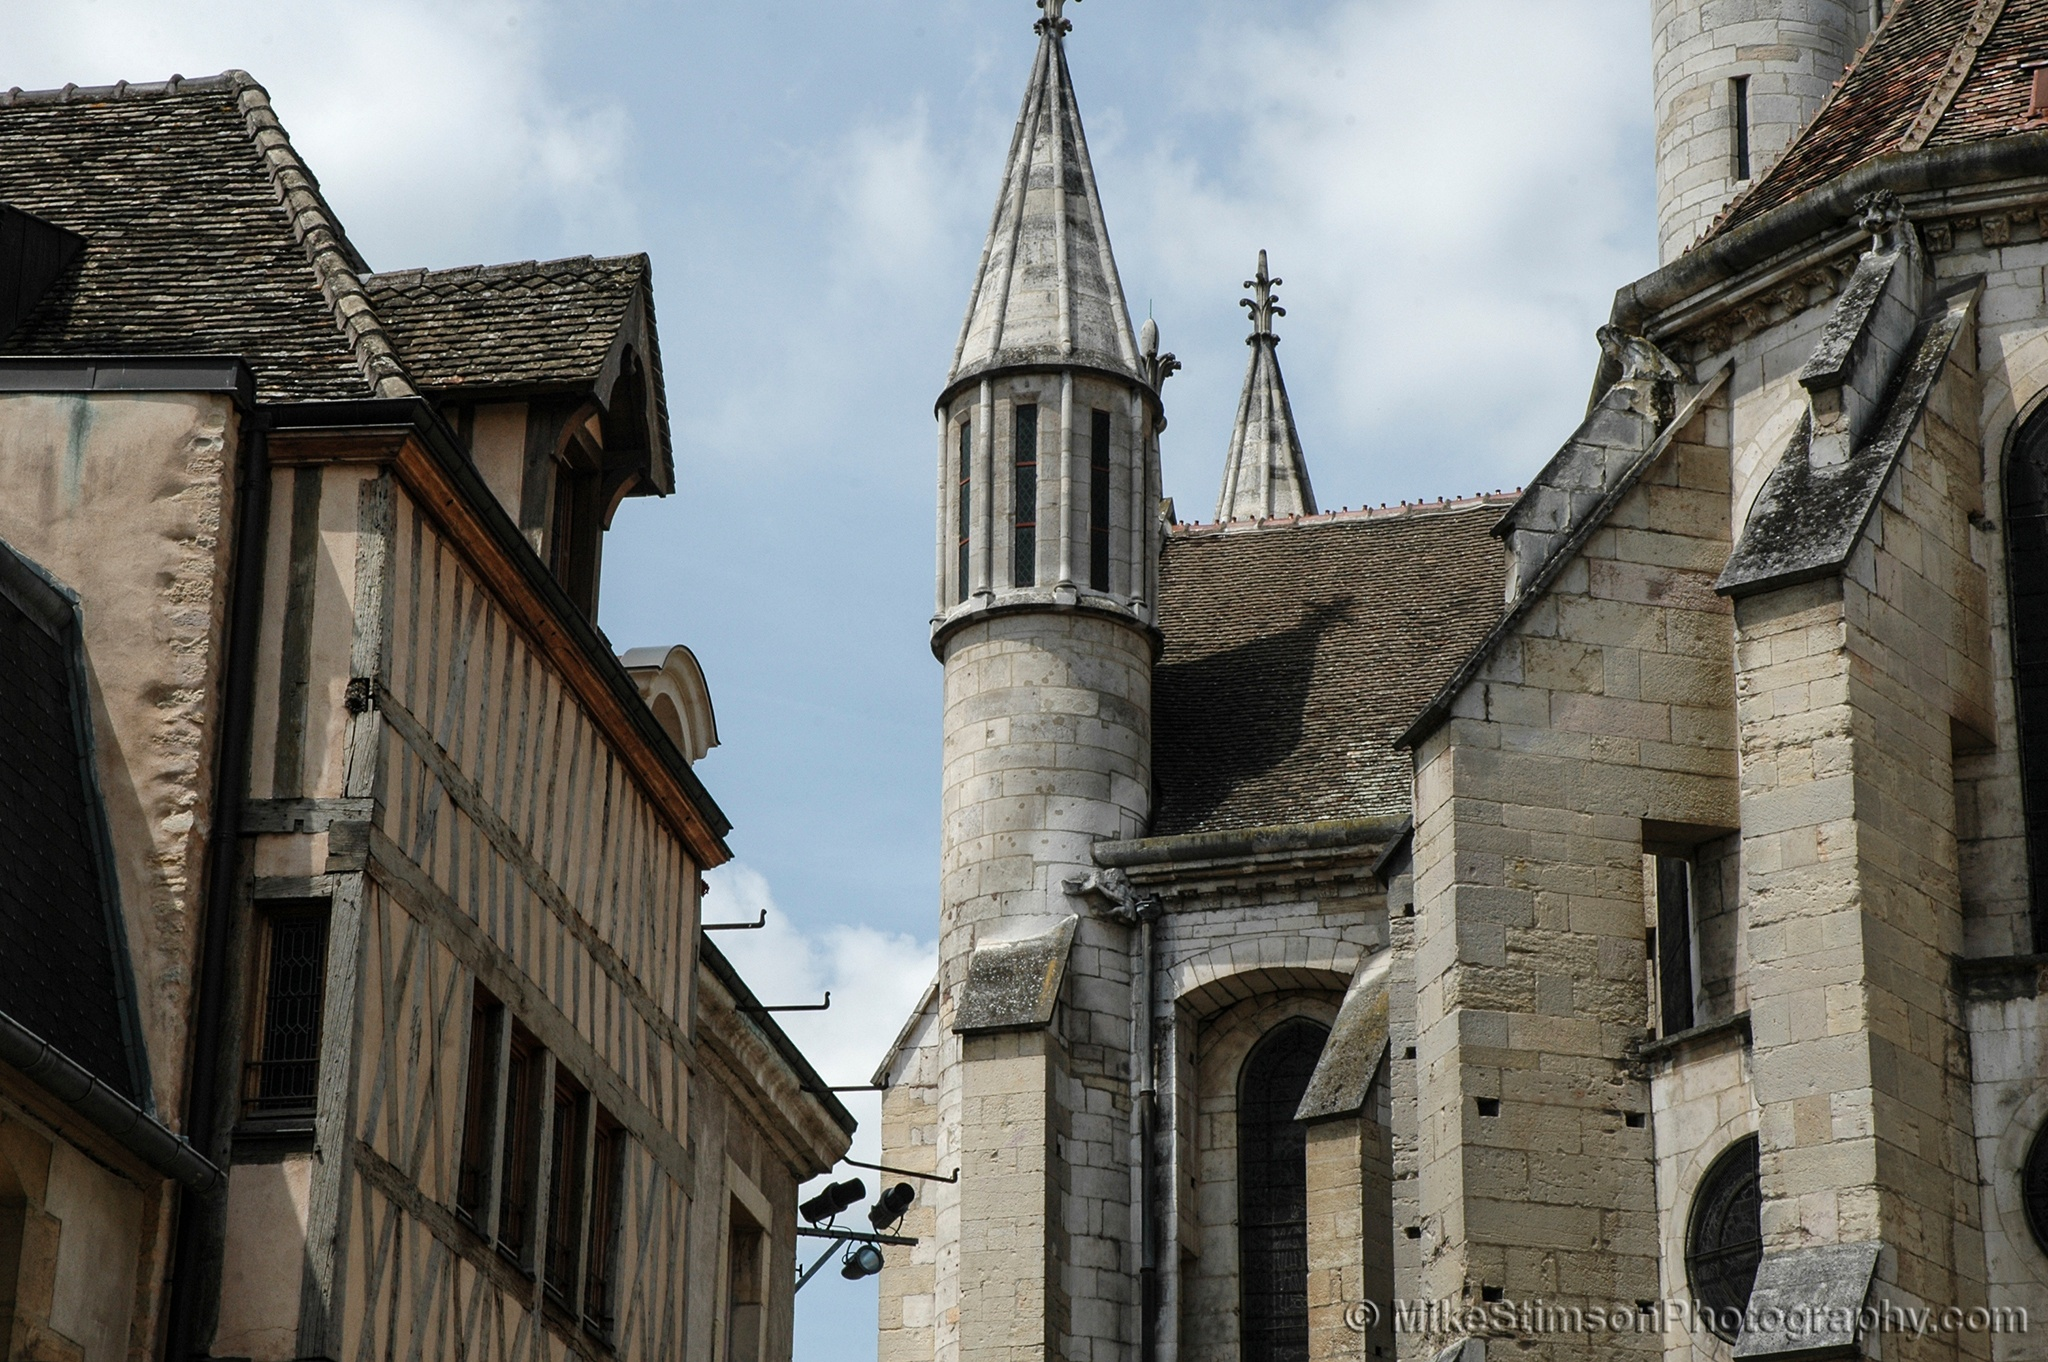 Cathedral and surrounding buildings, Dijon by Mike Stimson